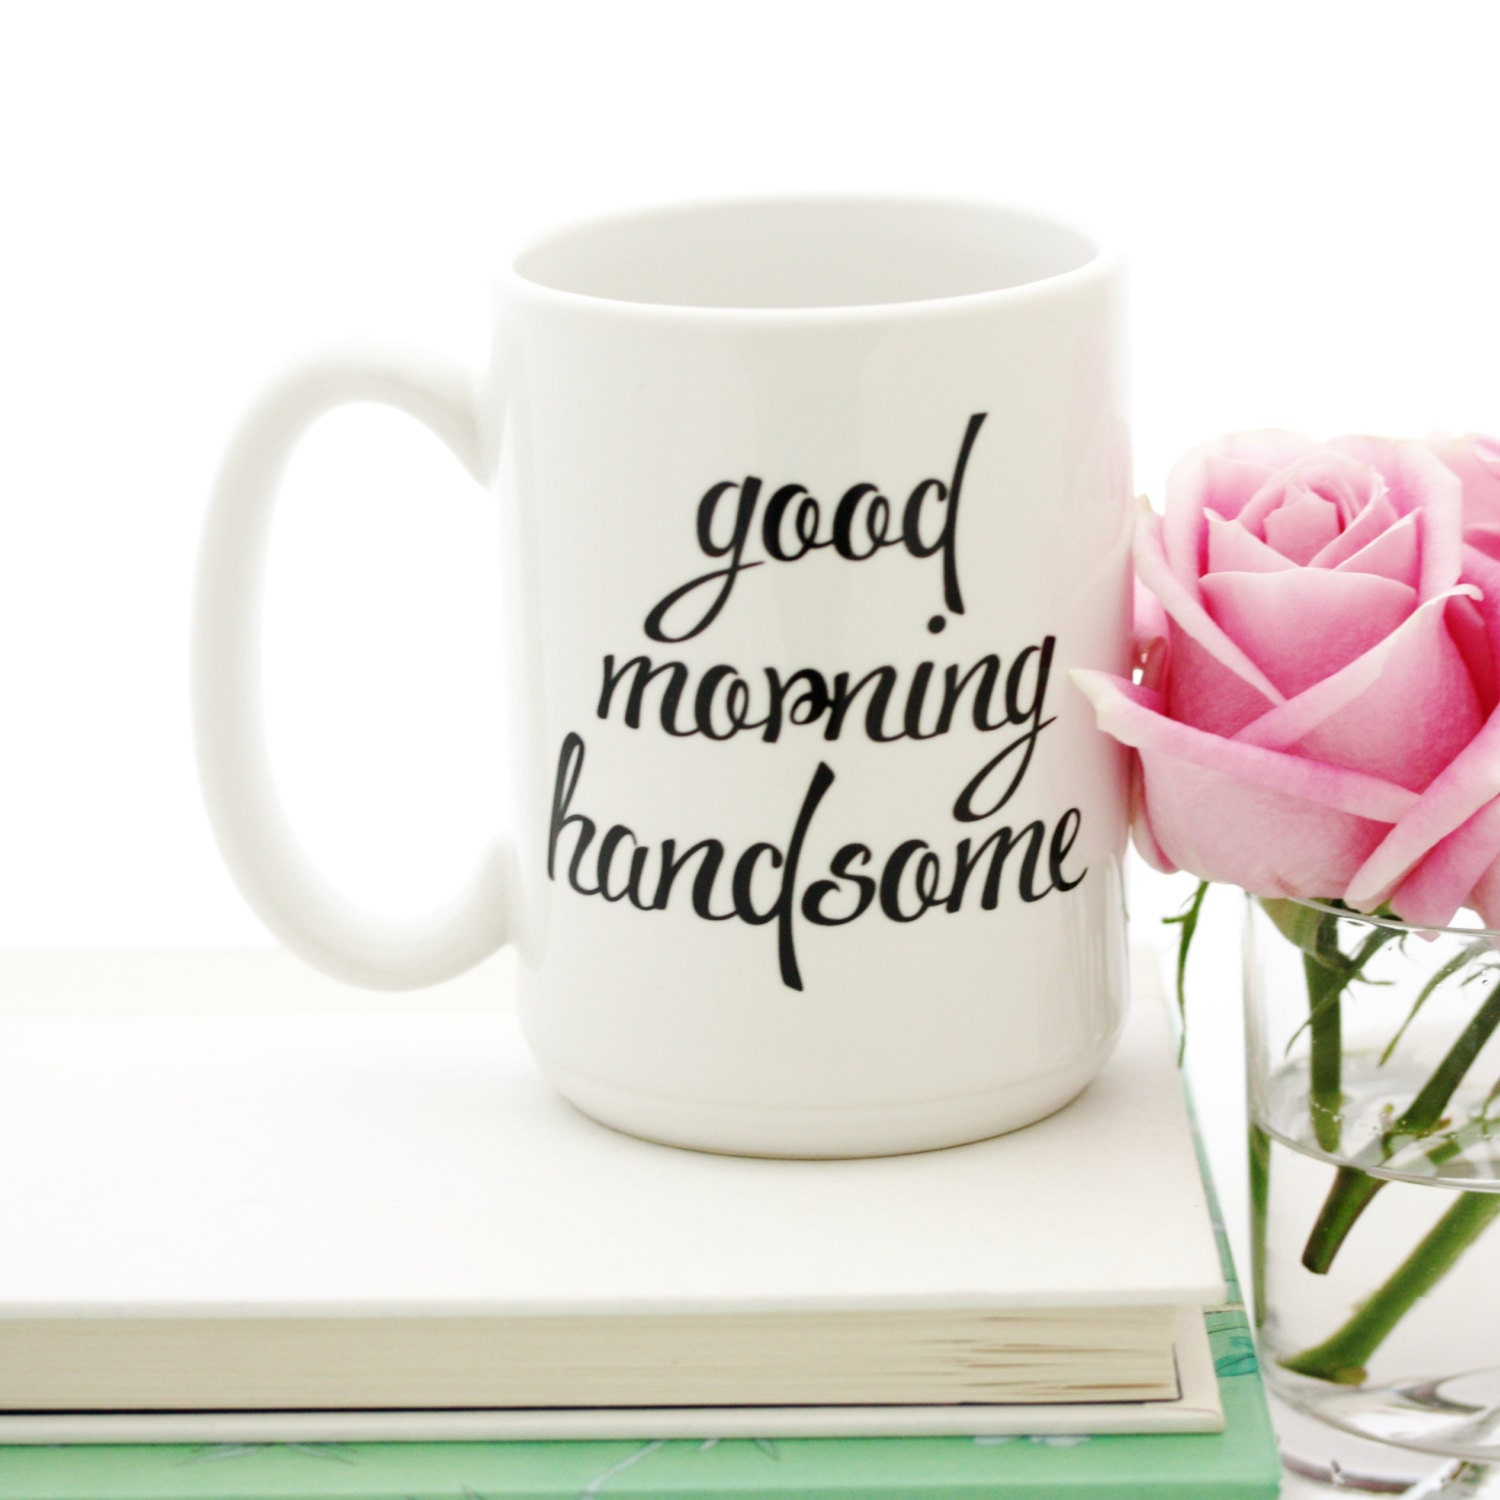 Good Morning Beautiful Mother : Good morning handsome mug gift idea for him by milk honey